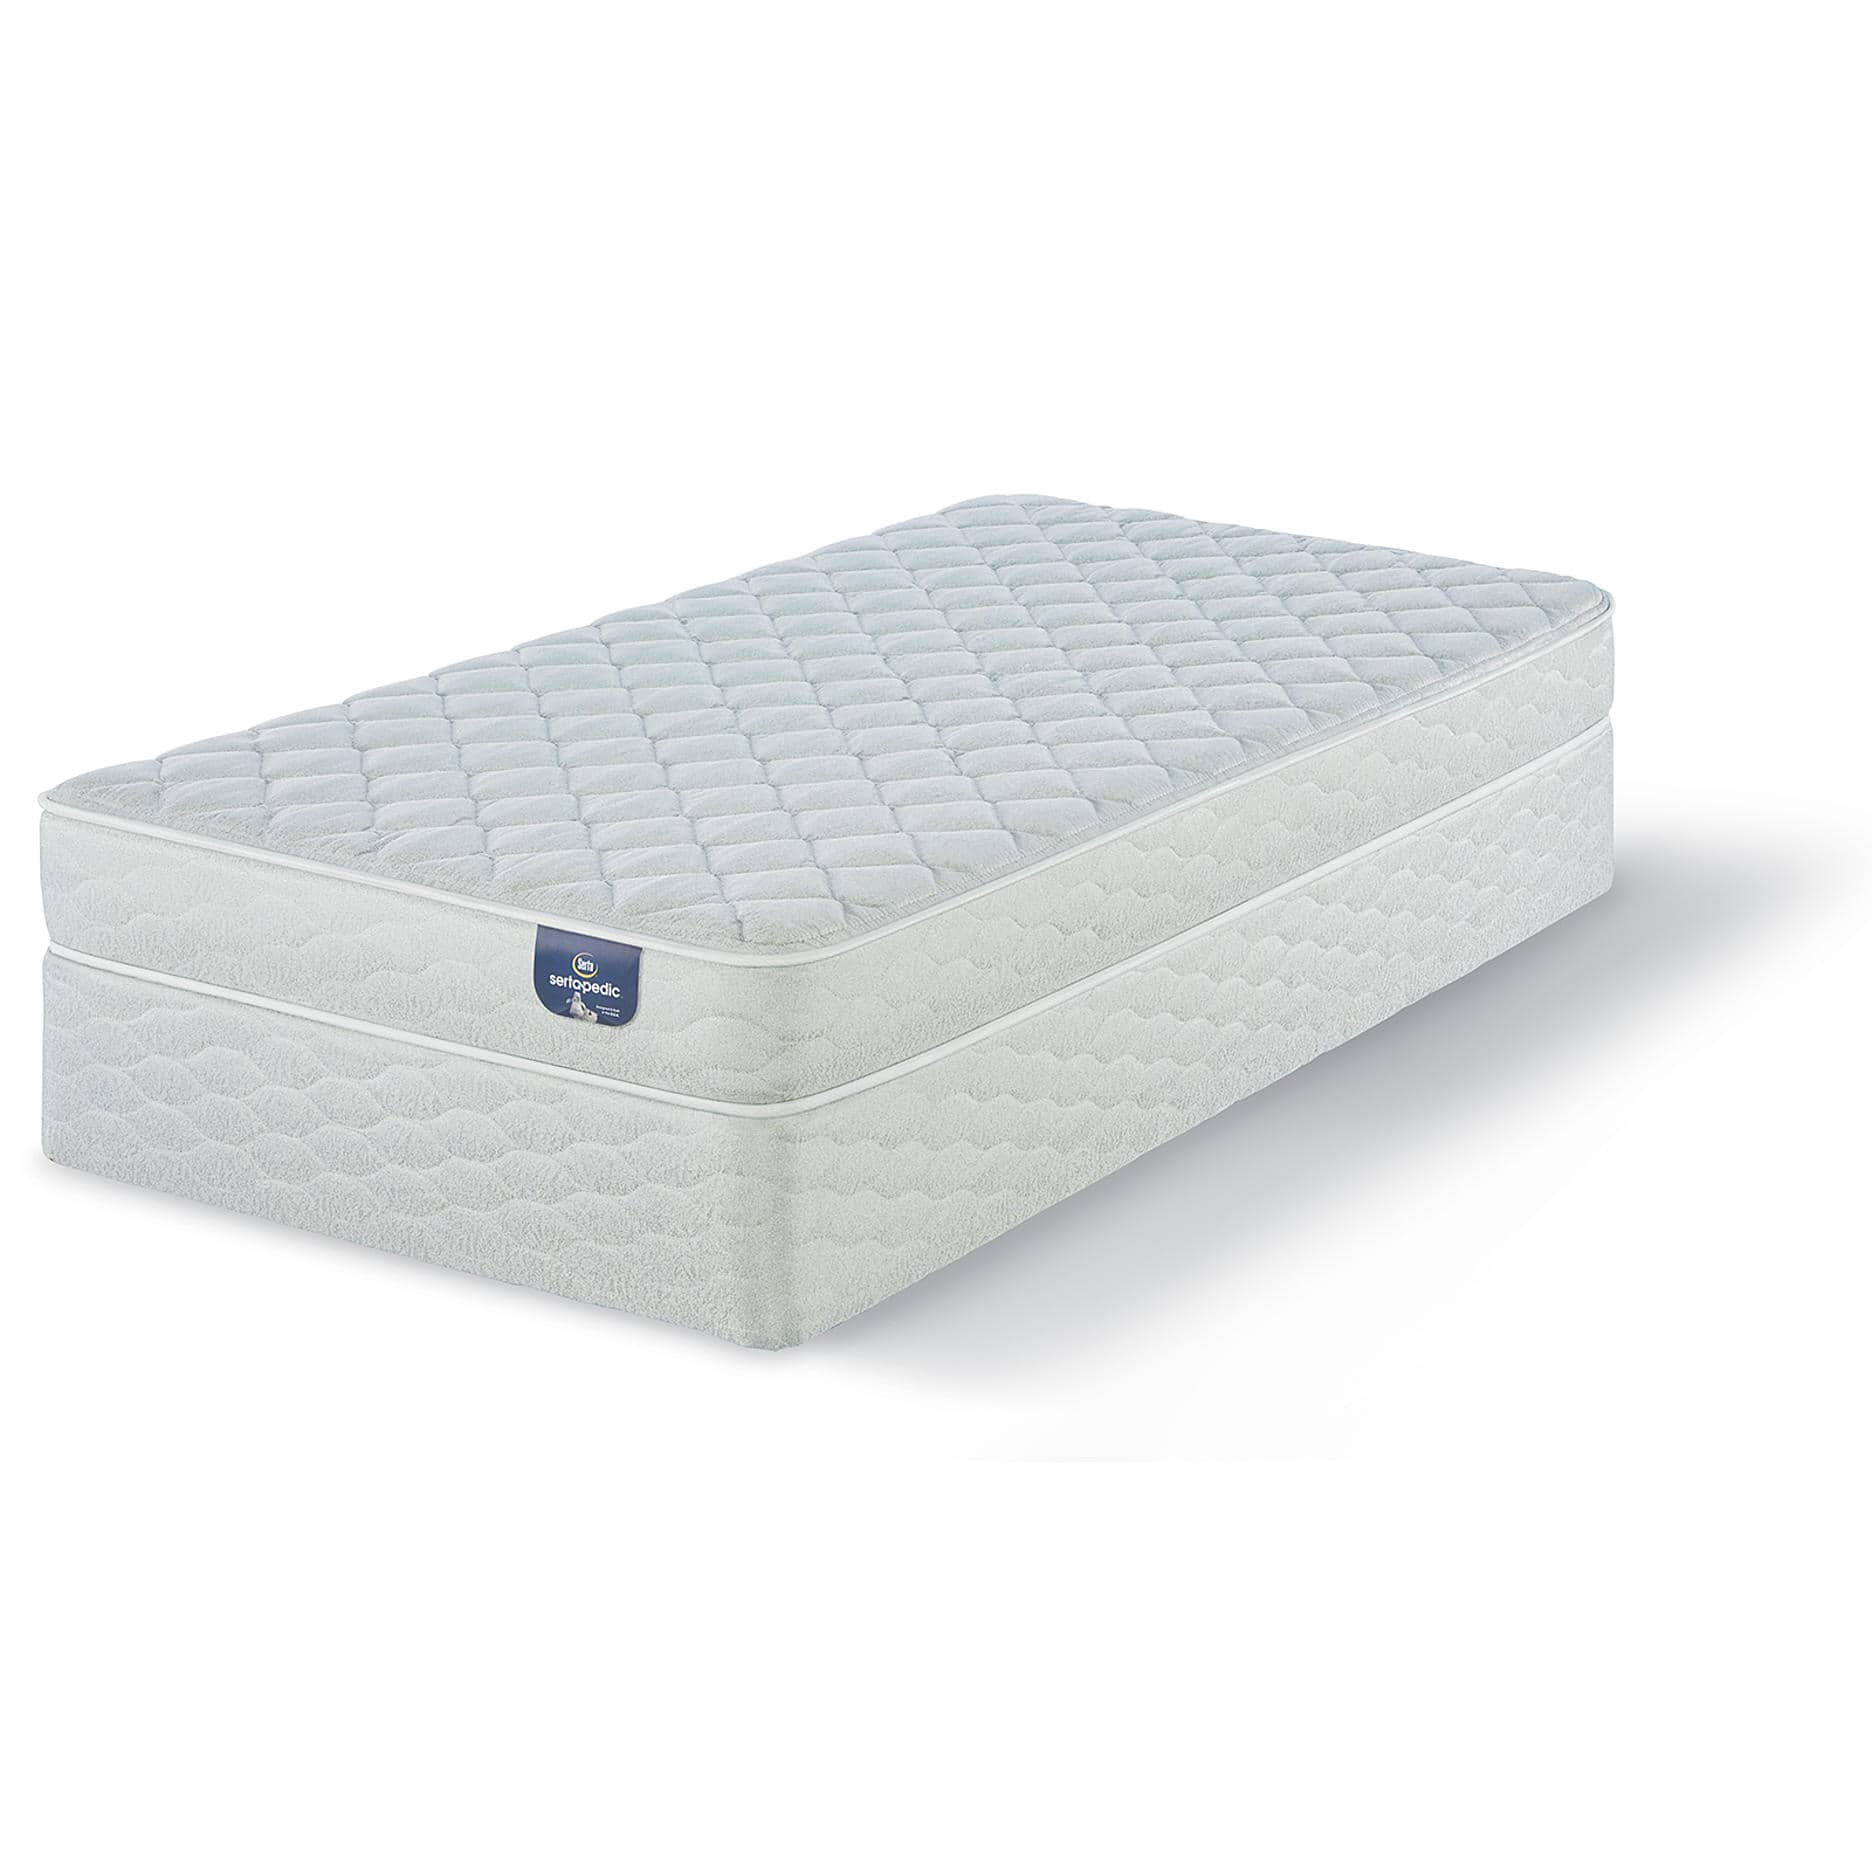 Ideal Serta Sertapedic Chiswick Firm Queen Mattress Bonus Box Spring Slickdeals net